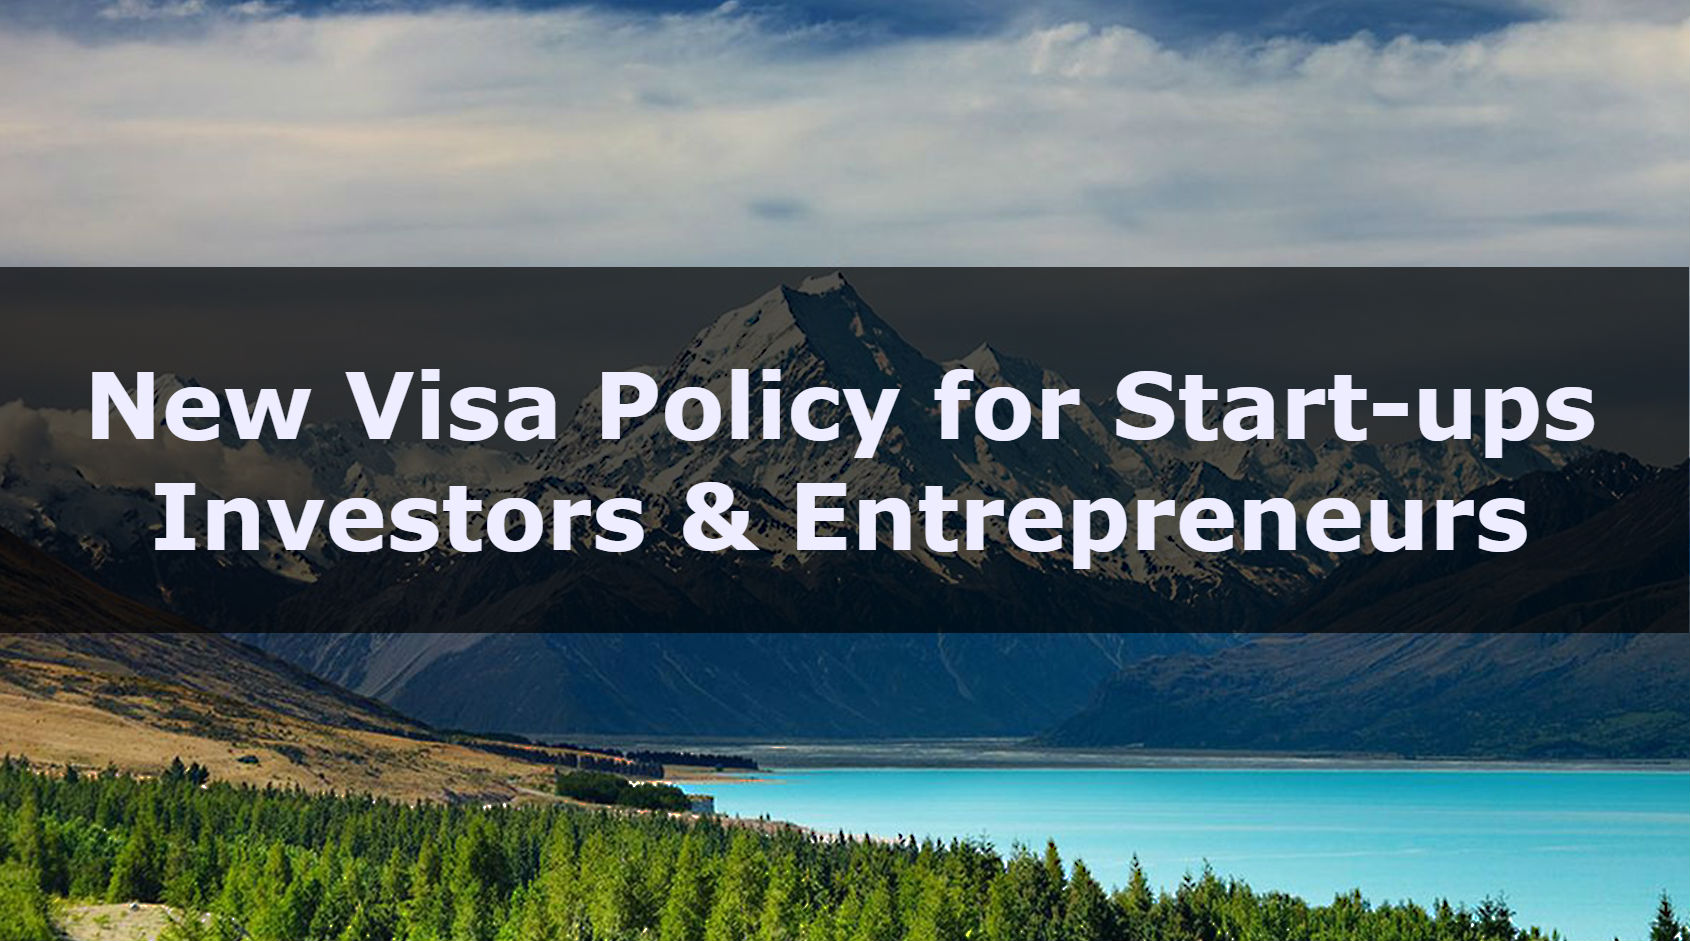 New Visa Policy for Start-ups Investors and Entrepreneurs